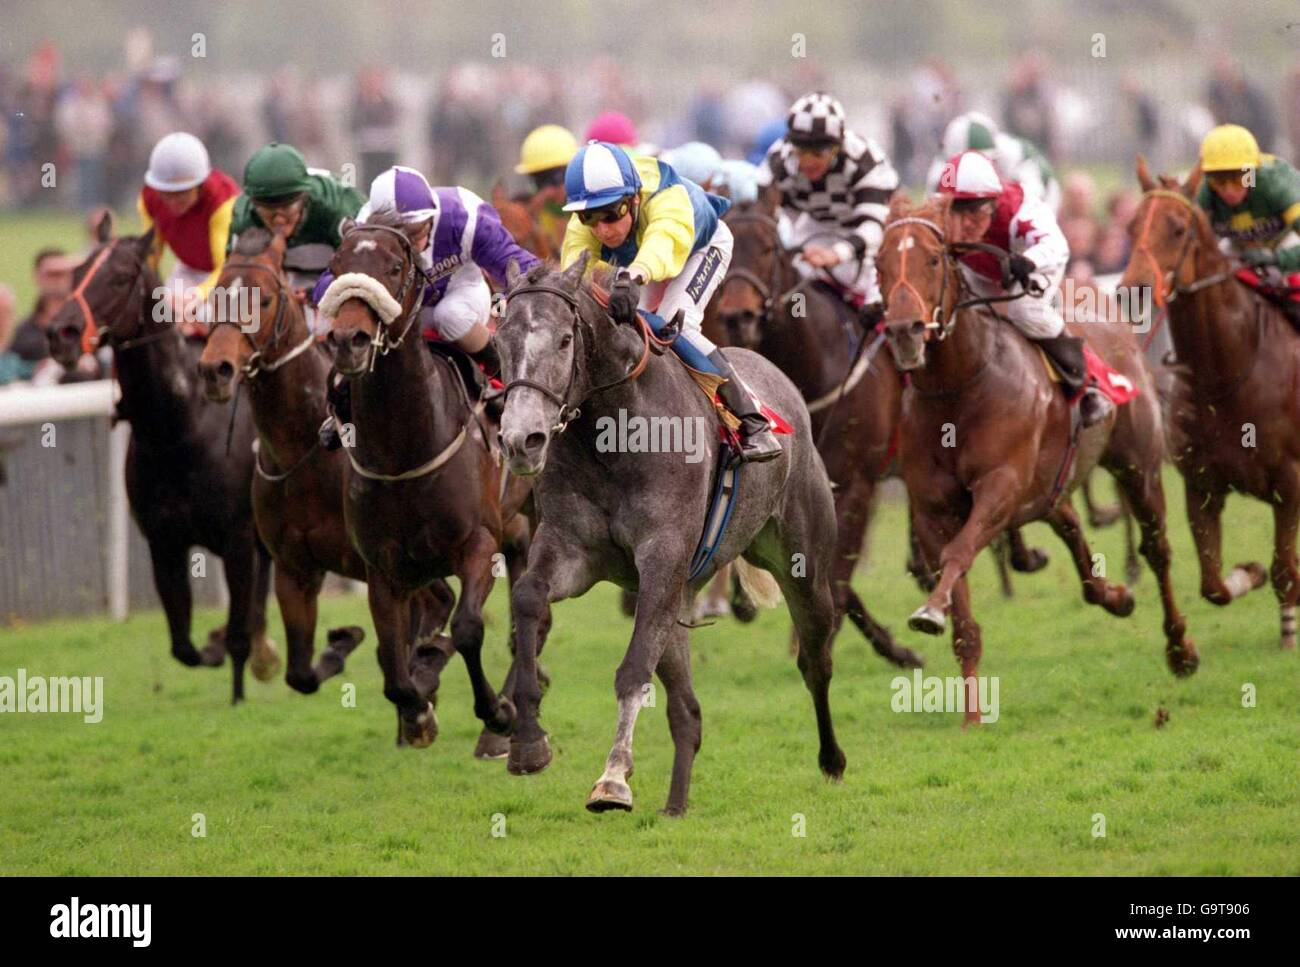 Horse Racing - York Races - Stock Image